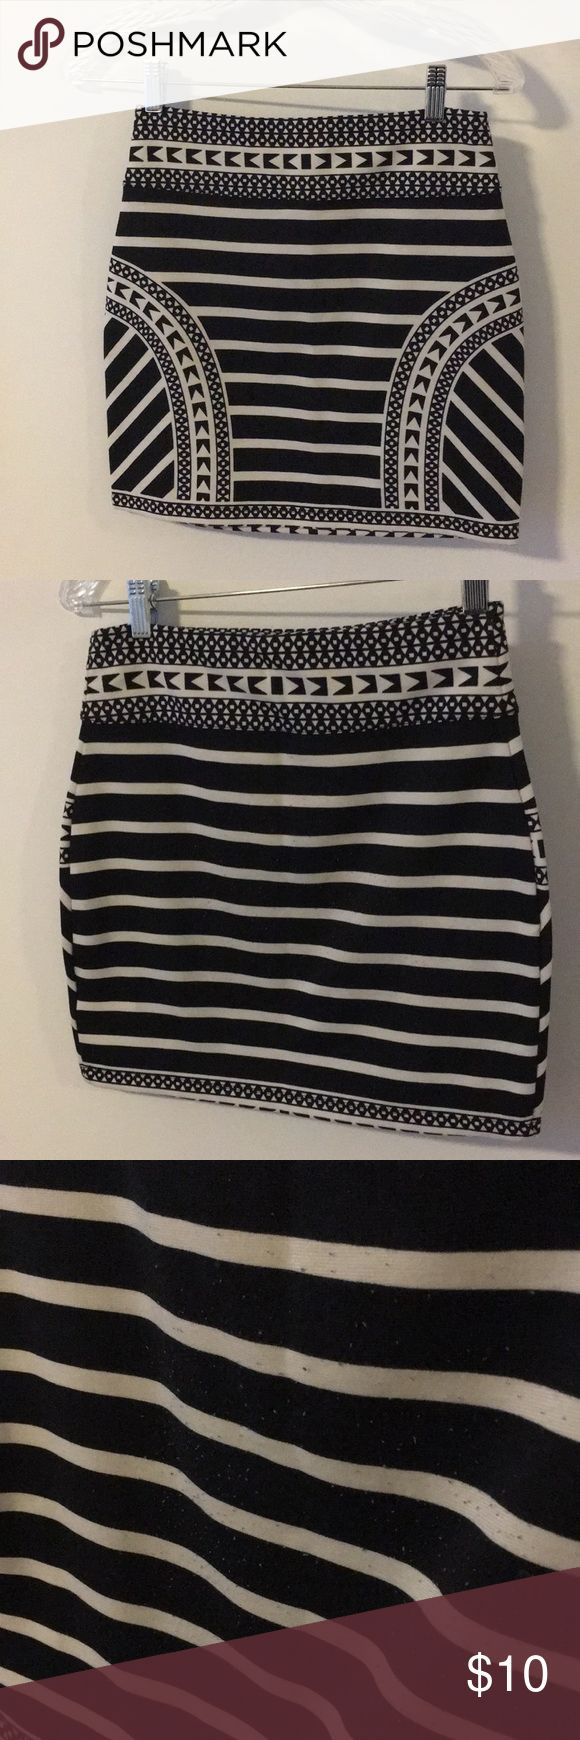 Patterned going out skirt Tight mini skirt, with thick waist band. A bit of pilling in the back but otherwise good condition. Soft and great for going out! Urban Outfitters Skirts Mini